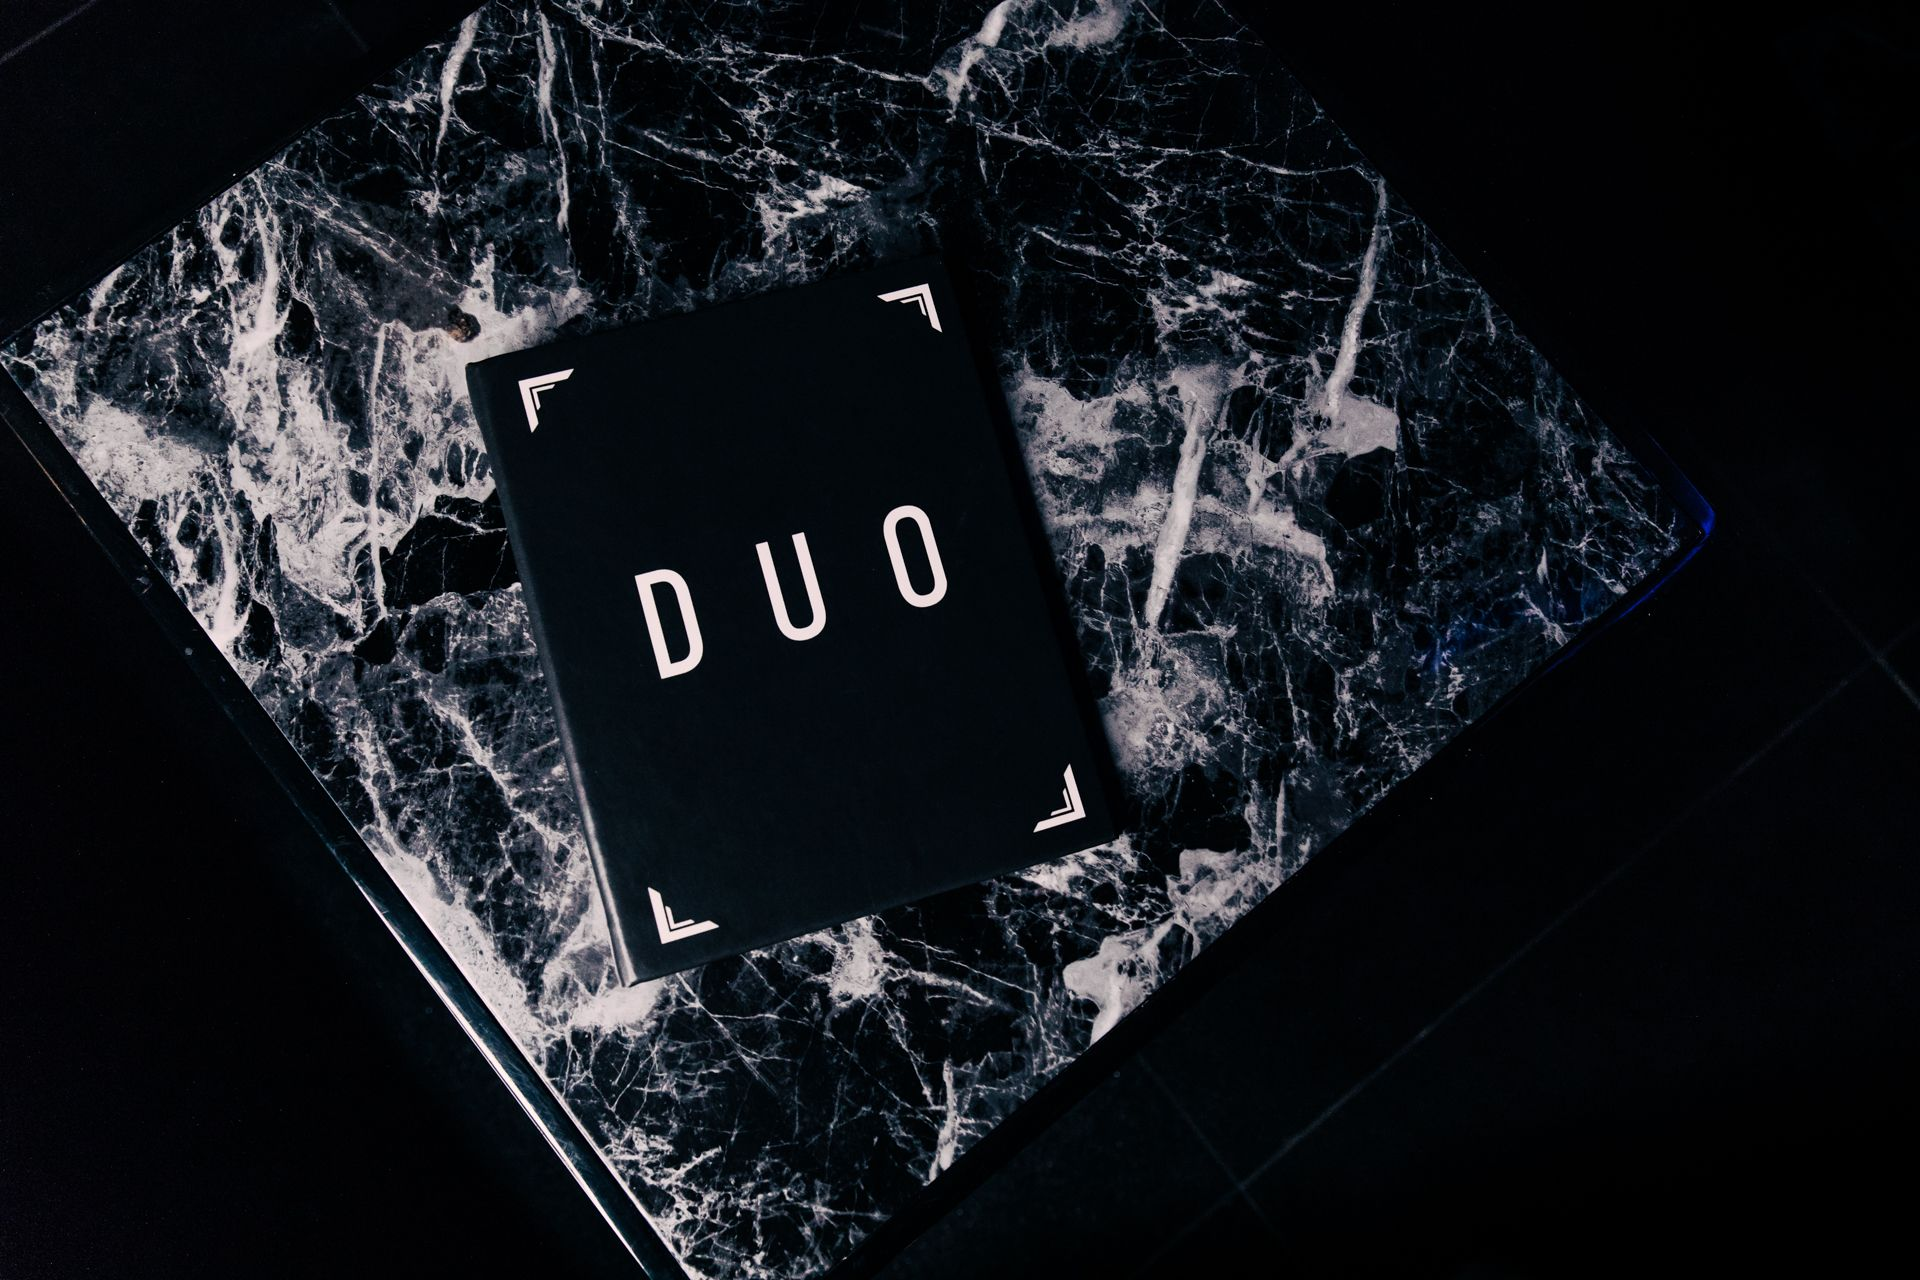 Duo London Venue Photography